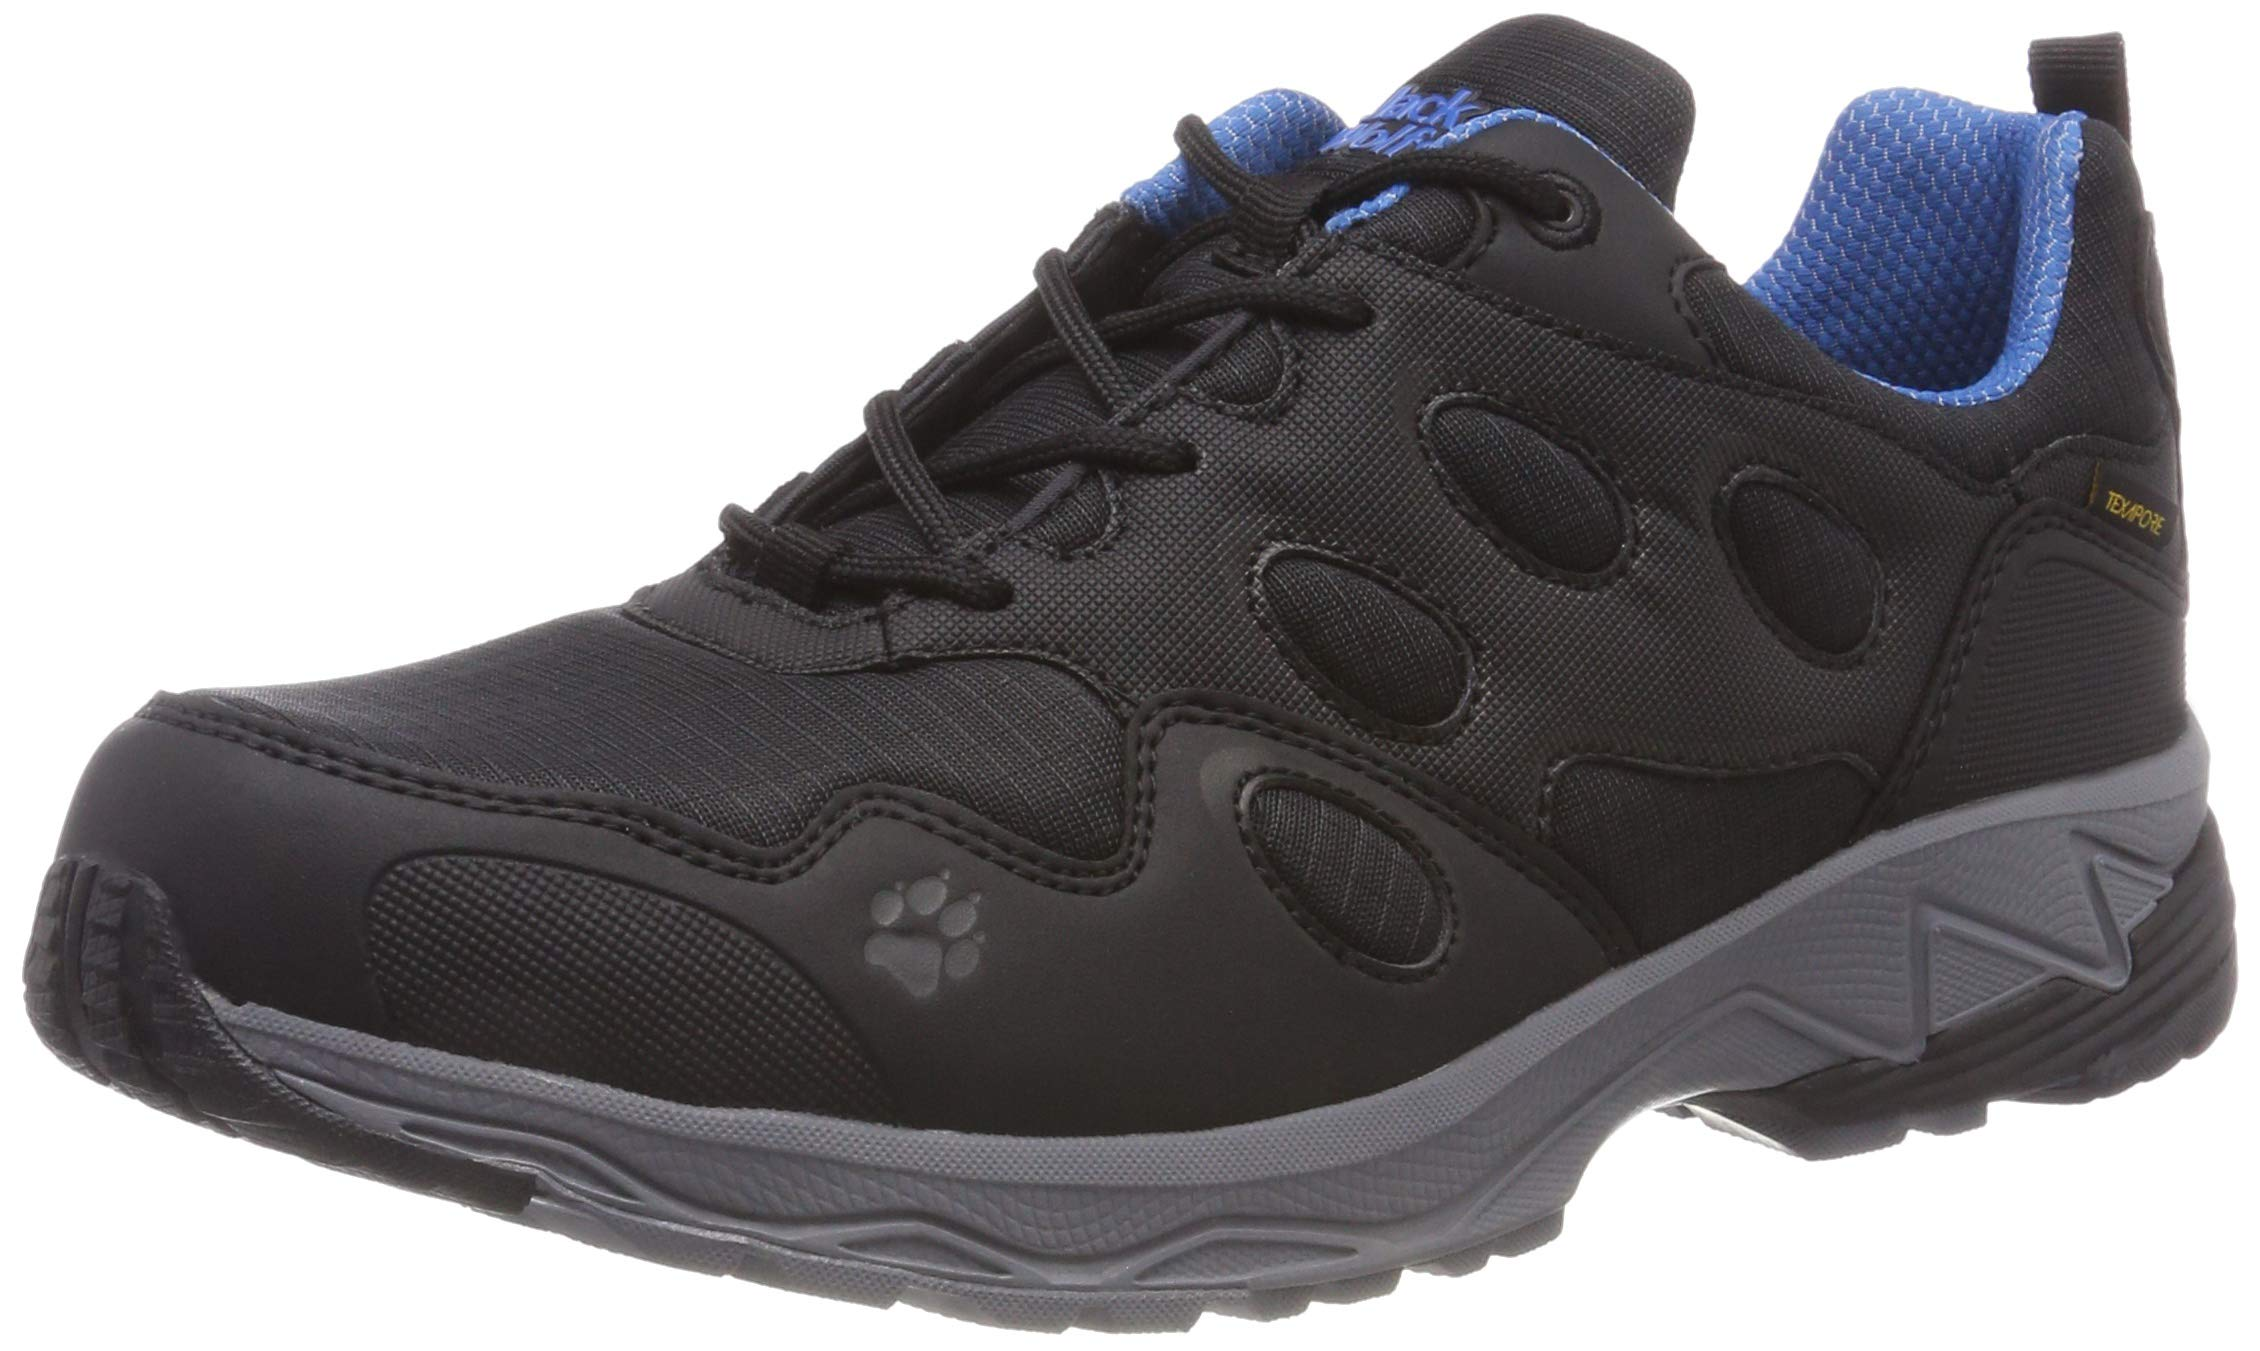 Jack Wolfskin Men's Venture Fly Texapore Low M Rise Hiking Shoes 1